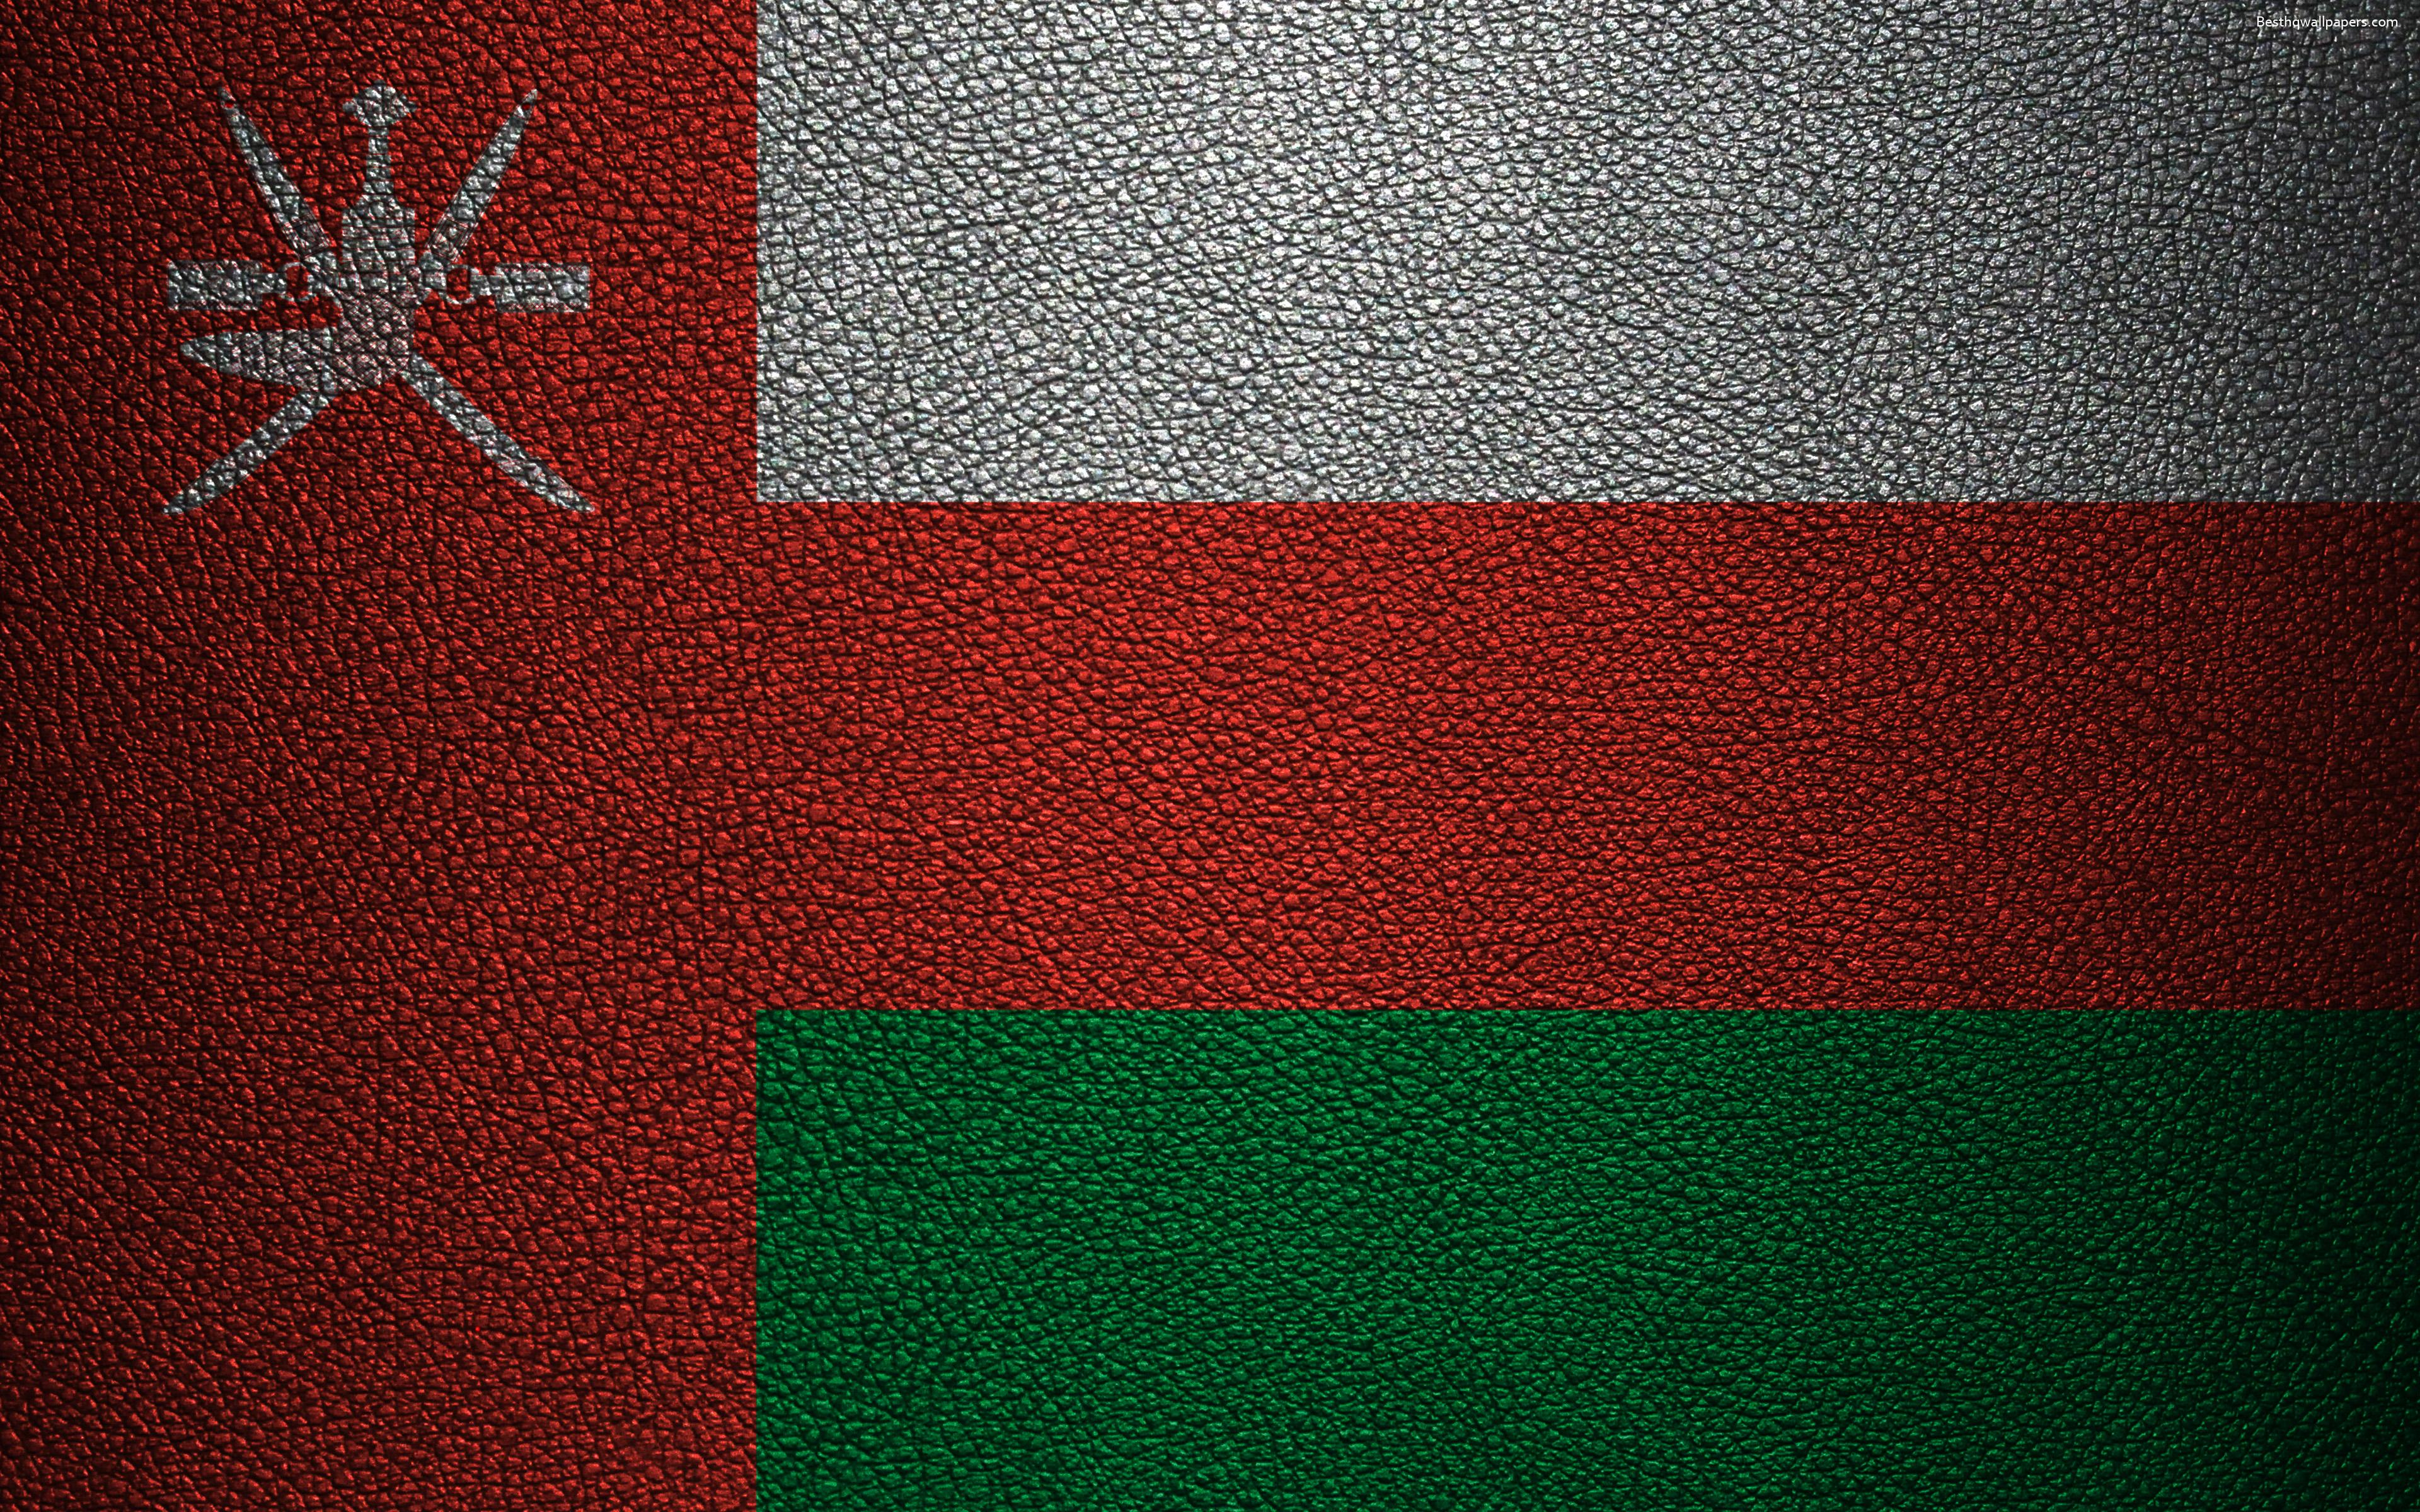 Download wallpapers Flag of Oman, 4K, leather texture, Omani flag ...